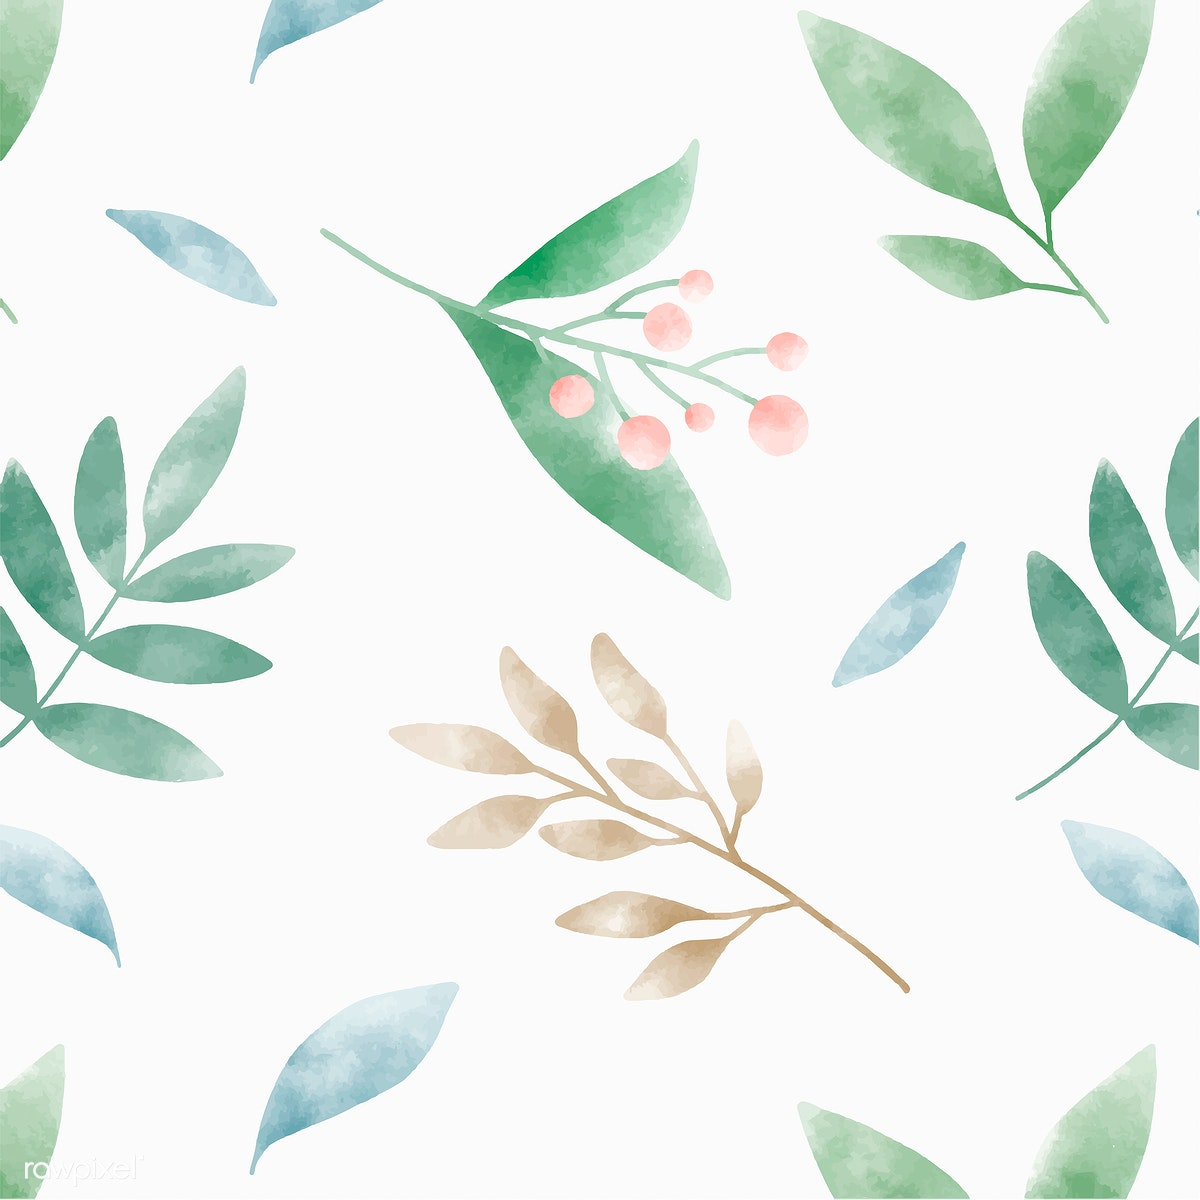 483aedee7fe7 Download premium illustration of Watercolor leaves graphic pattern design